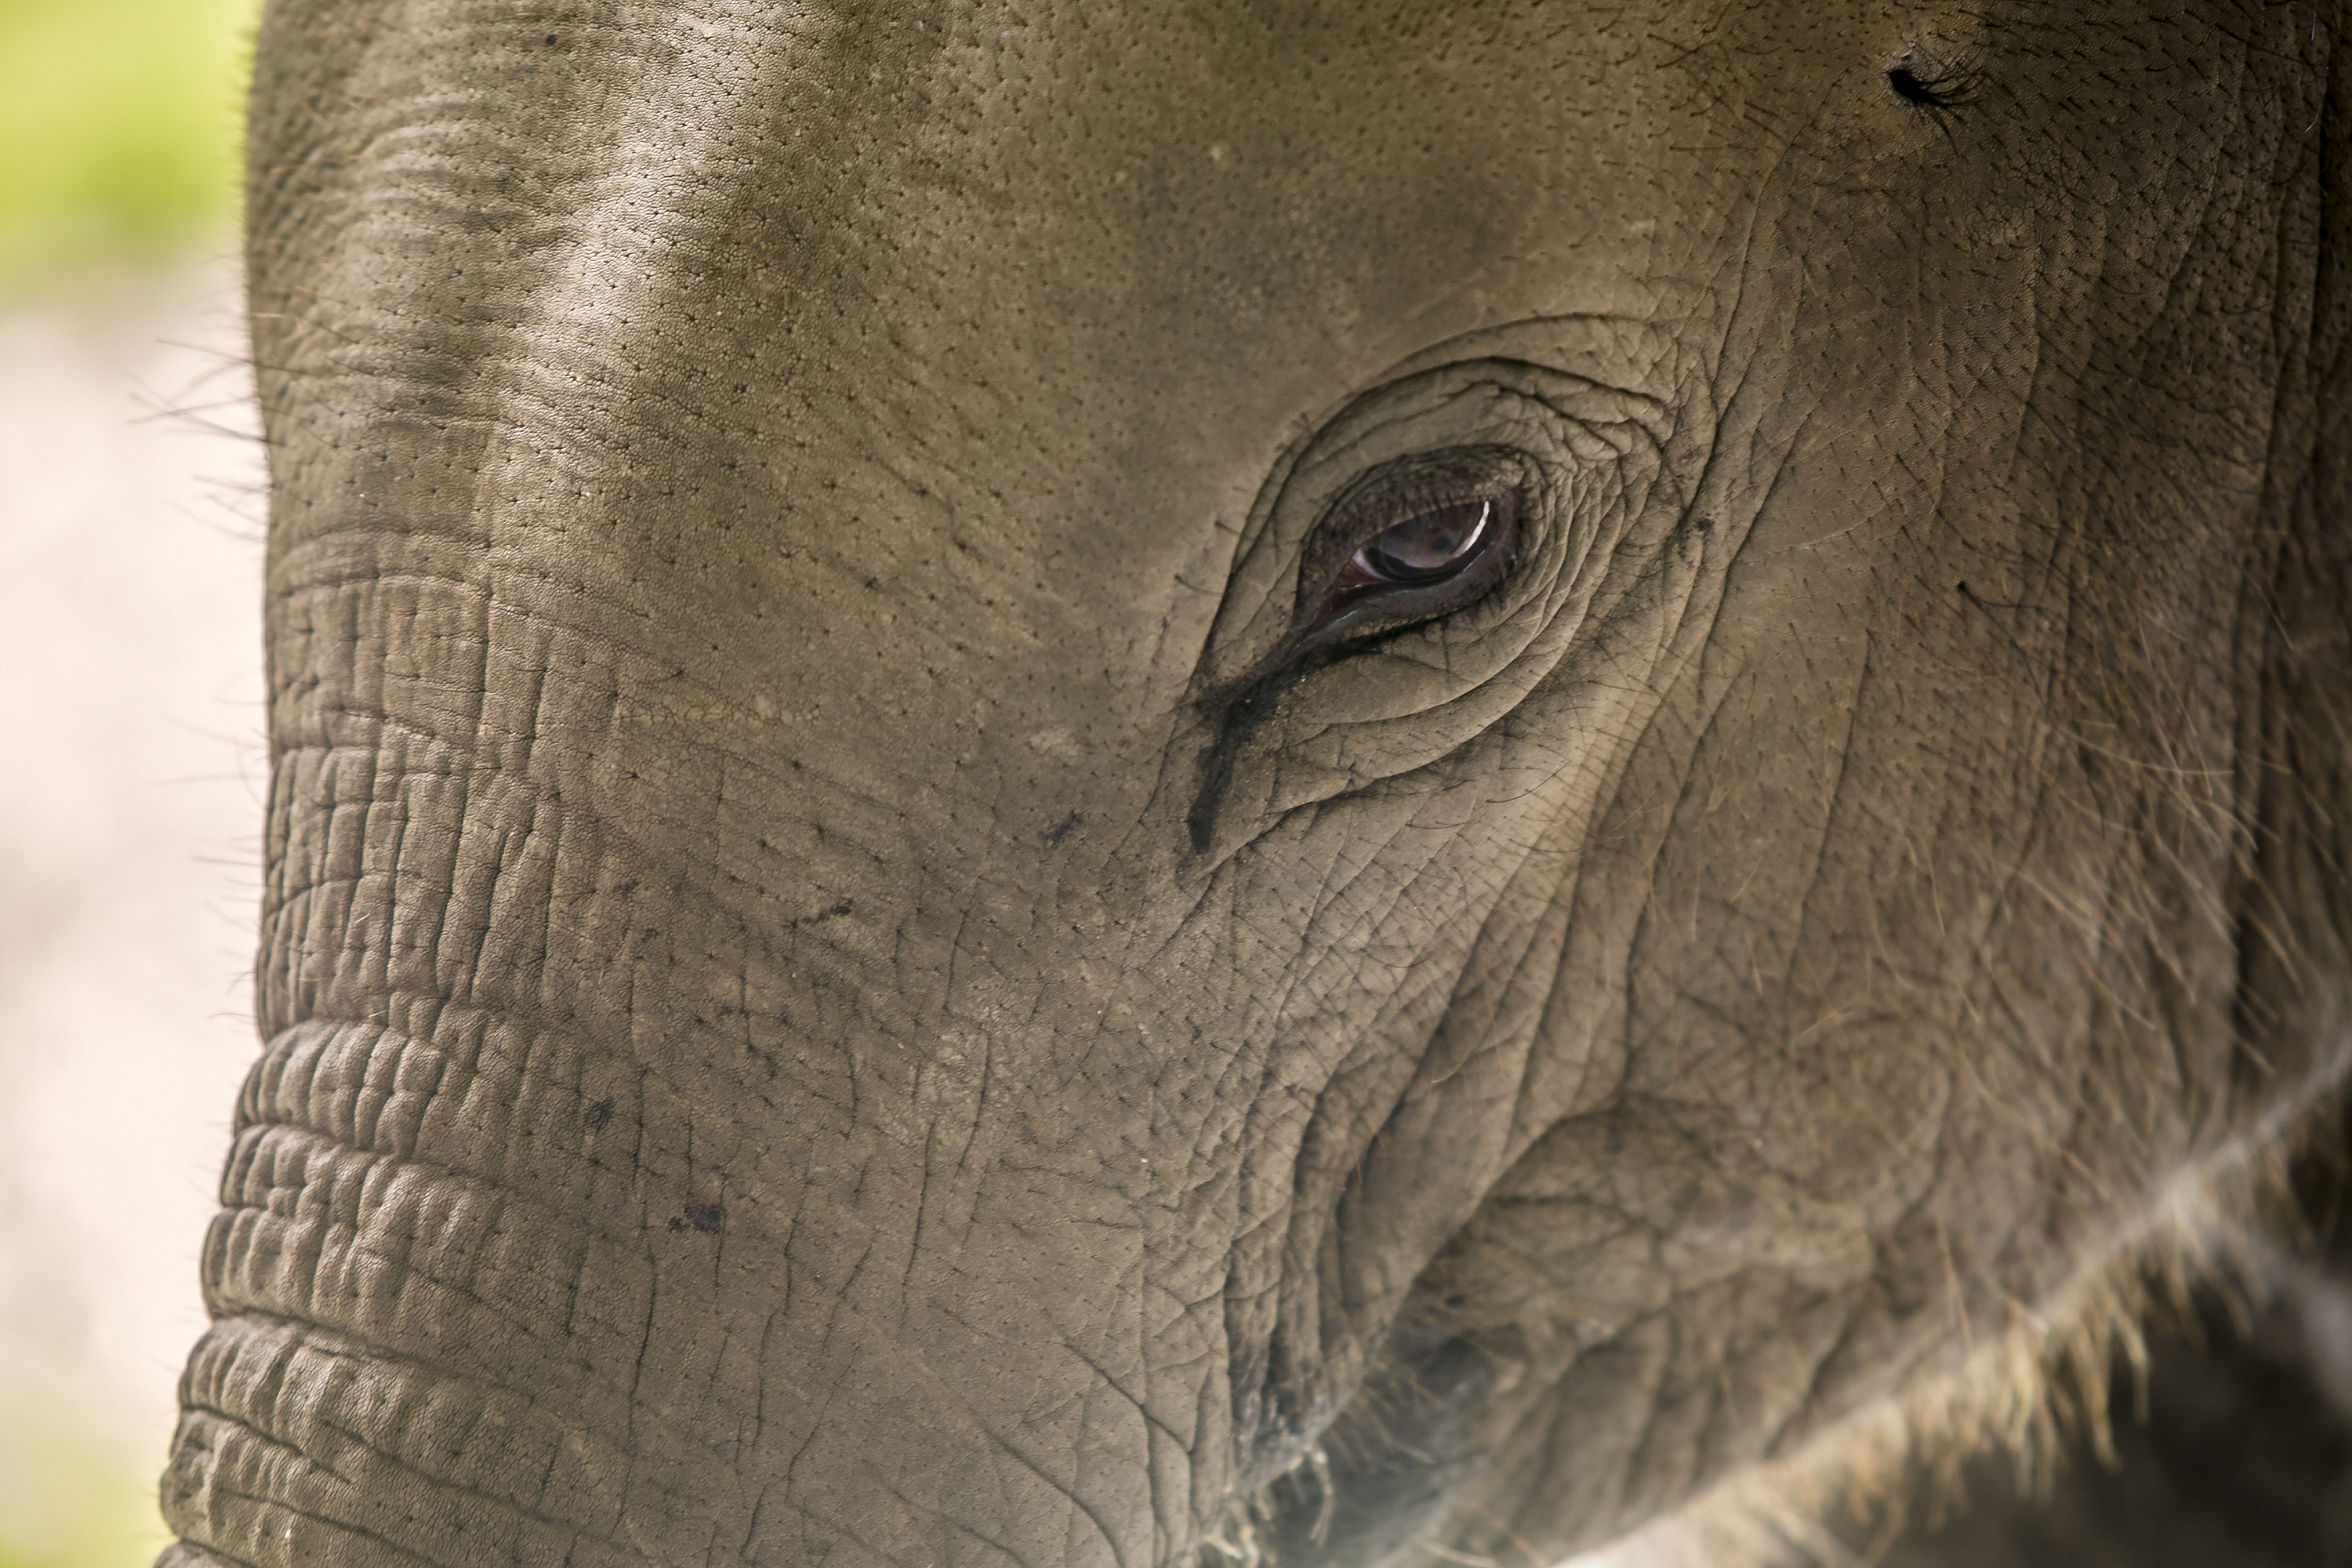 Petition: Save Last Remaining Elephant at Zoo Where Two Elephants Died in the Last Year!